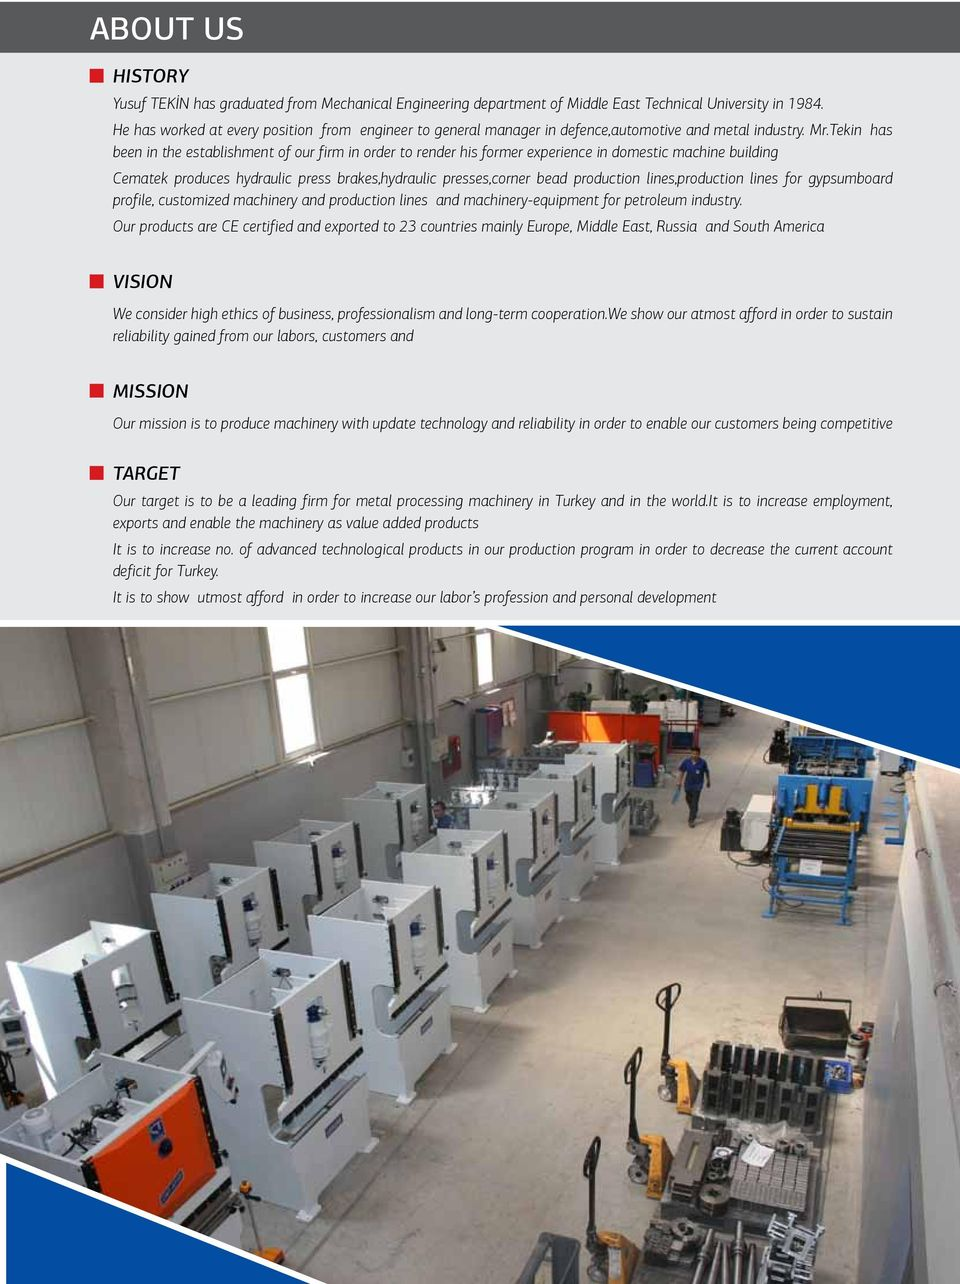 Tekin has been in the establishment of our firm in order to render his former experience in domestic machine building ematek produces hydraulic press brakes,hydraulic presses,corner bead production